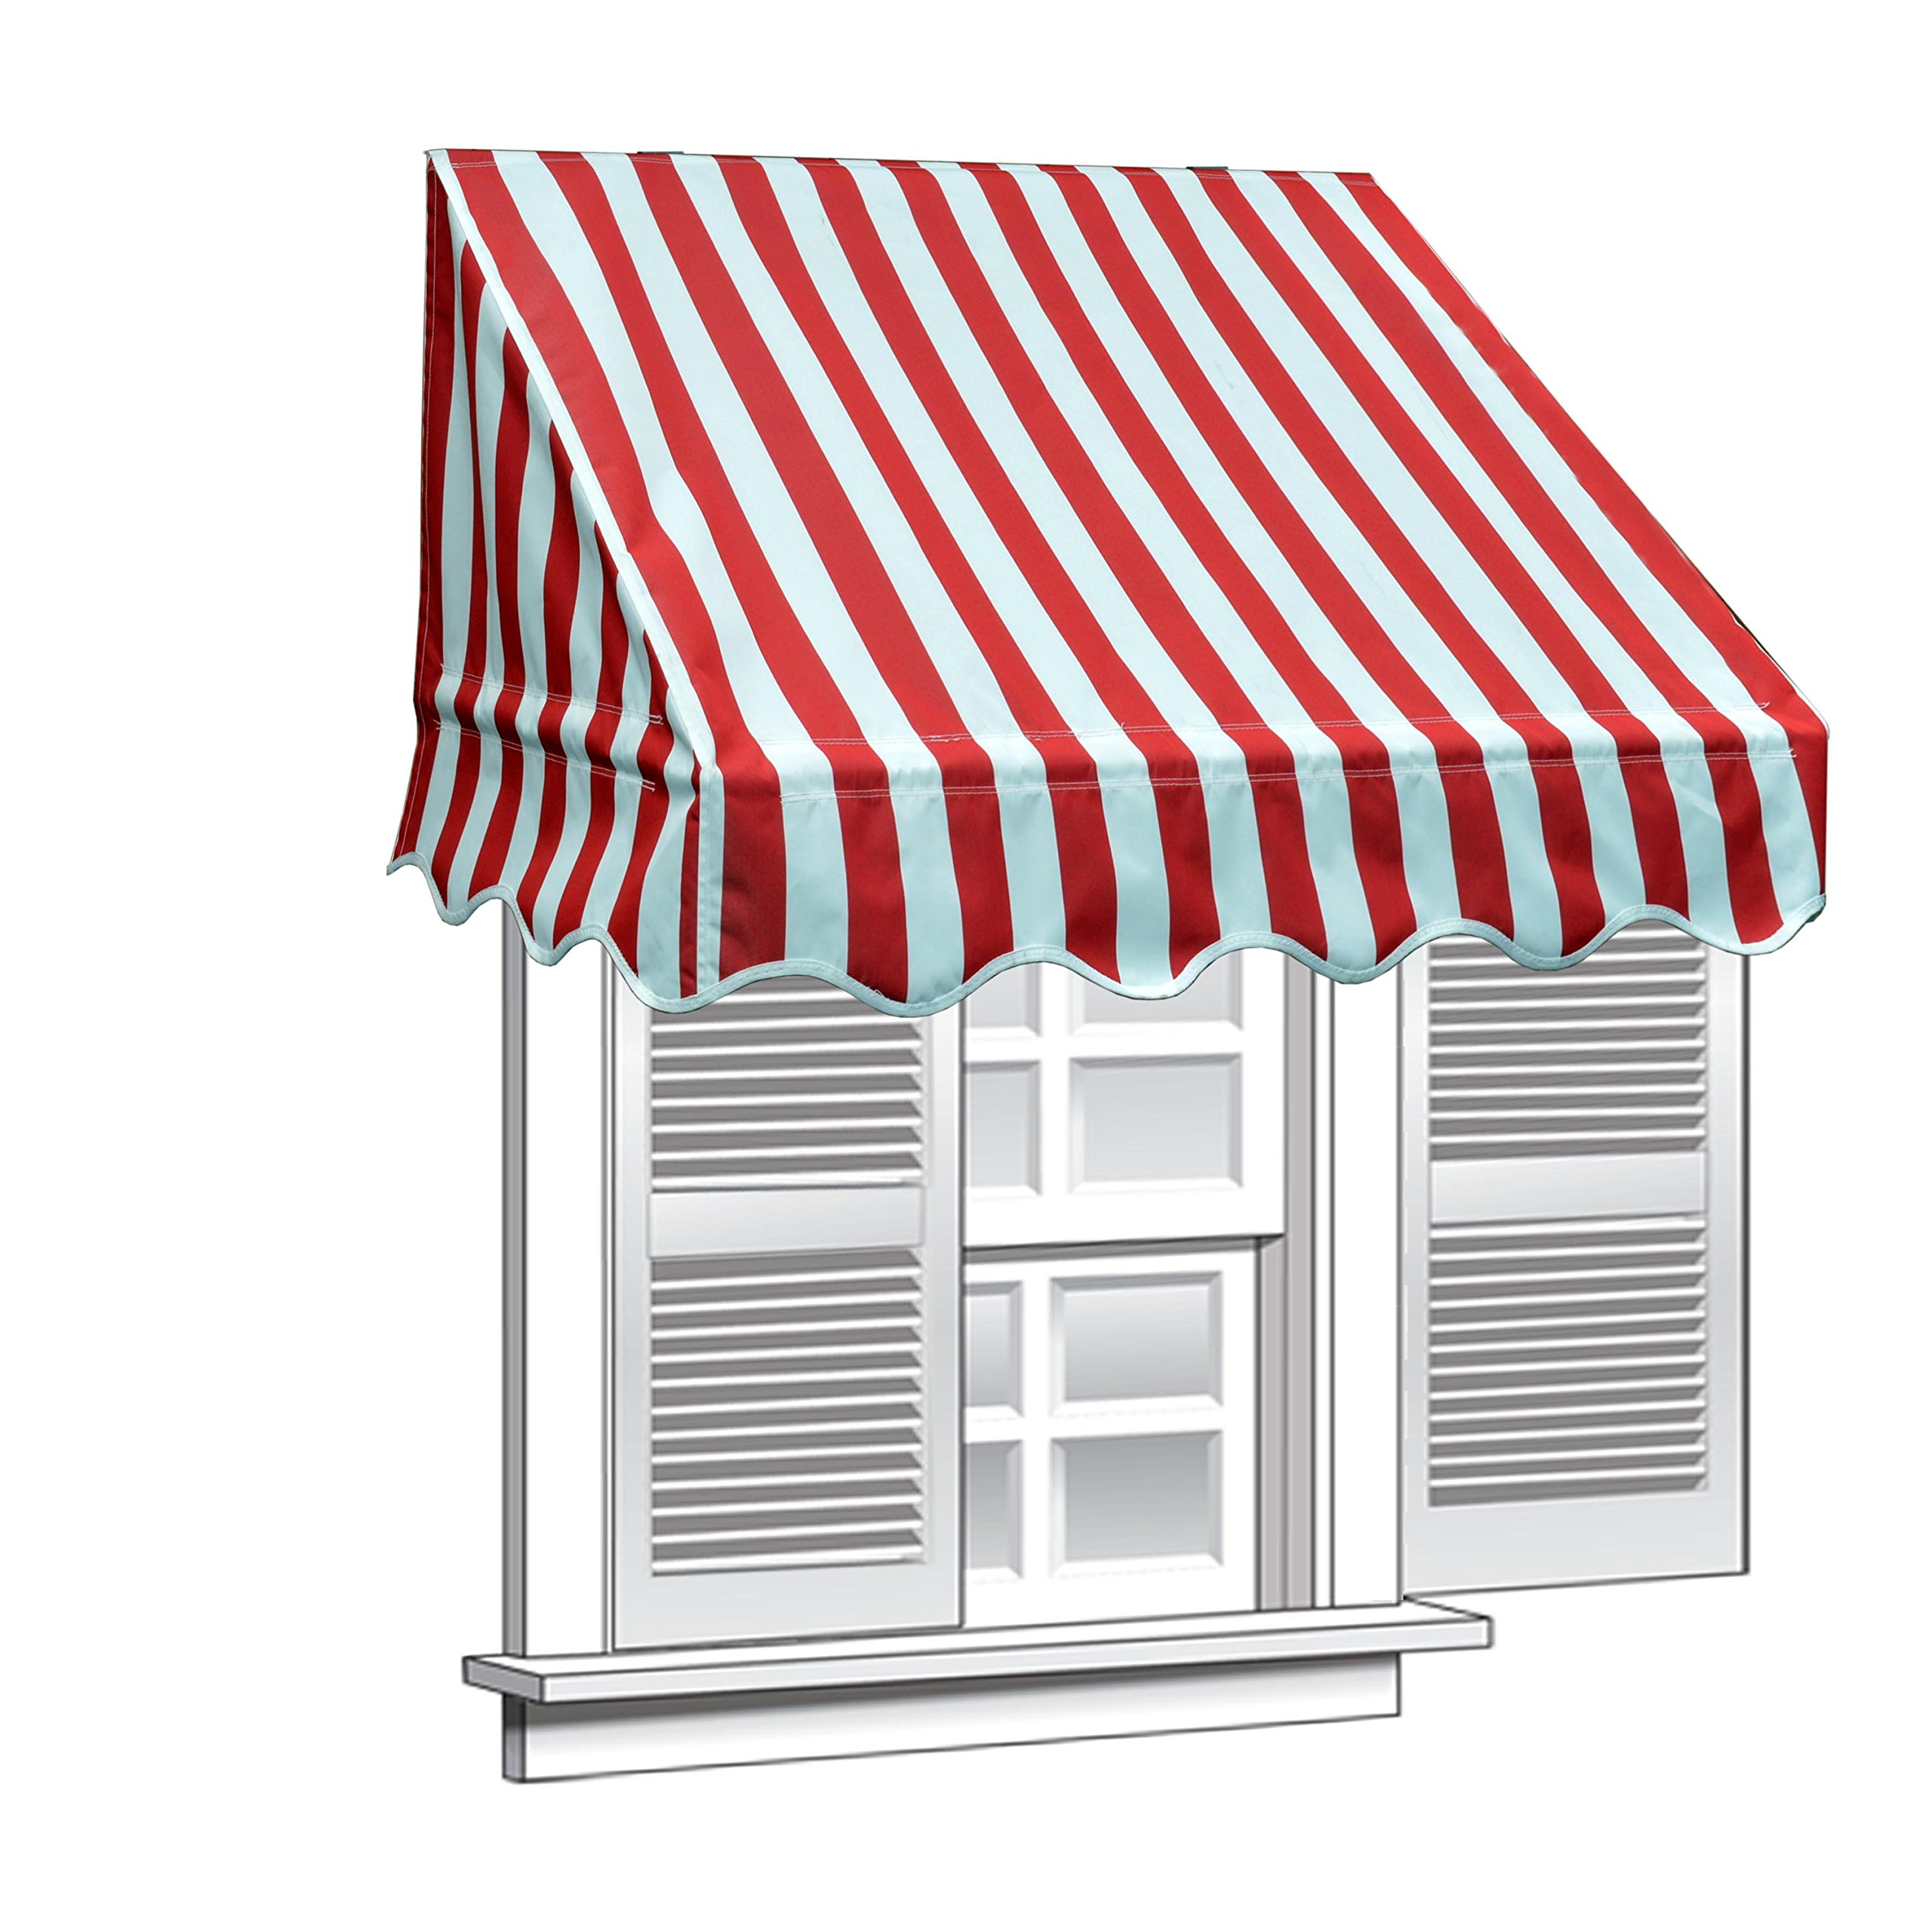 ALEKO WAW6X2MSTRRE19 Window Canopy Awning 6 x 2 Feet Multi-Stripe Red